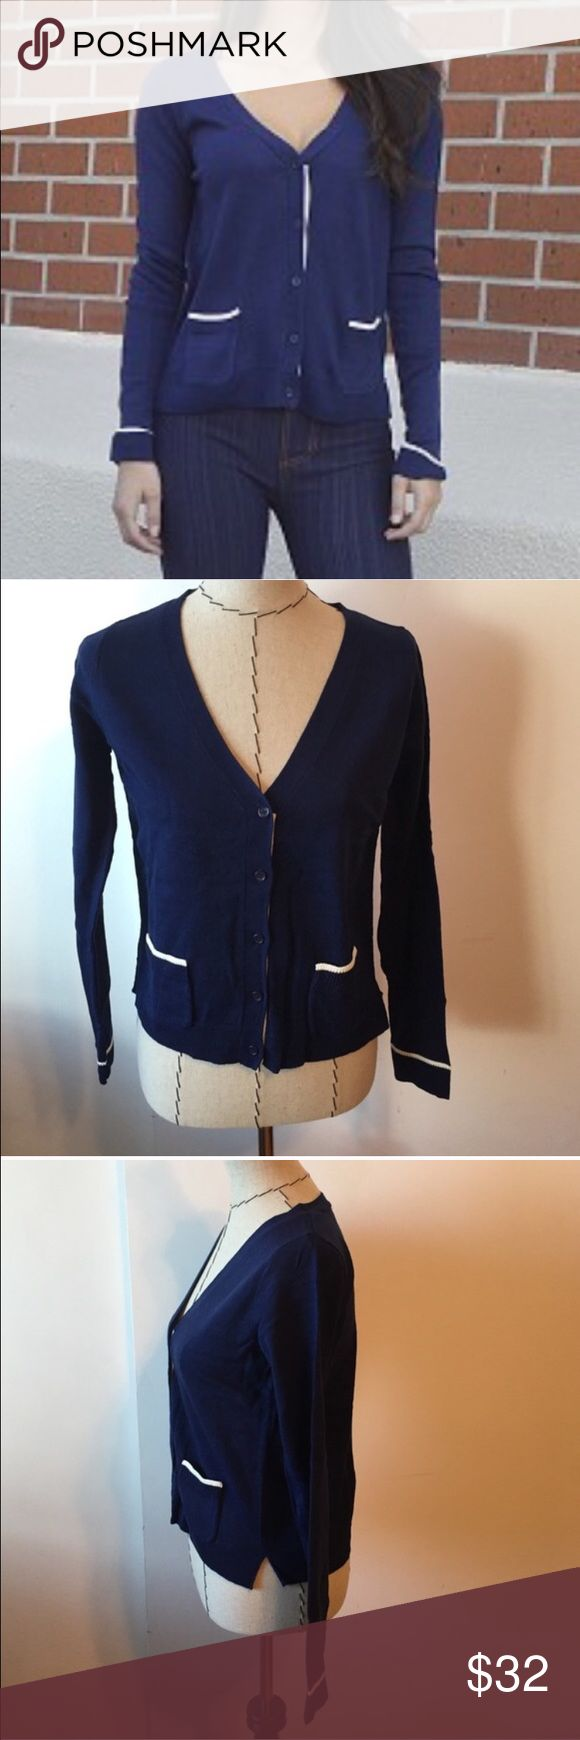 Blue and white cardigan Cute preppy cardigan! Never worn. No buttons are missing. Fits true to size. Cute blue cardigan with white accents. Has two pockets on the front. Sweaters Cardigans